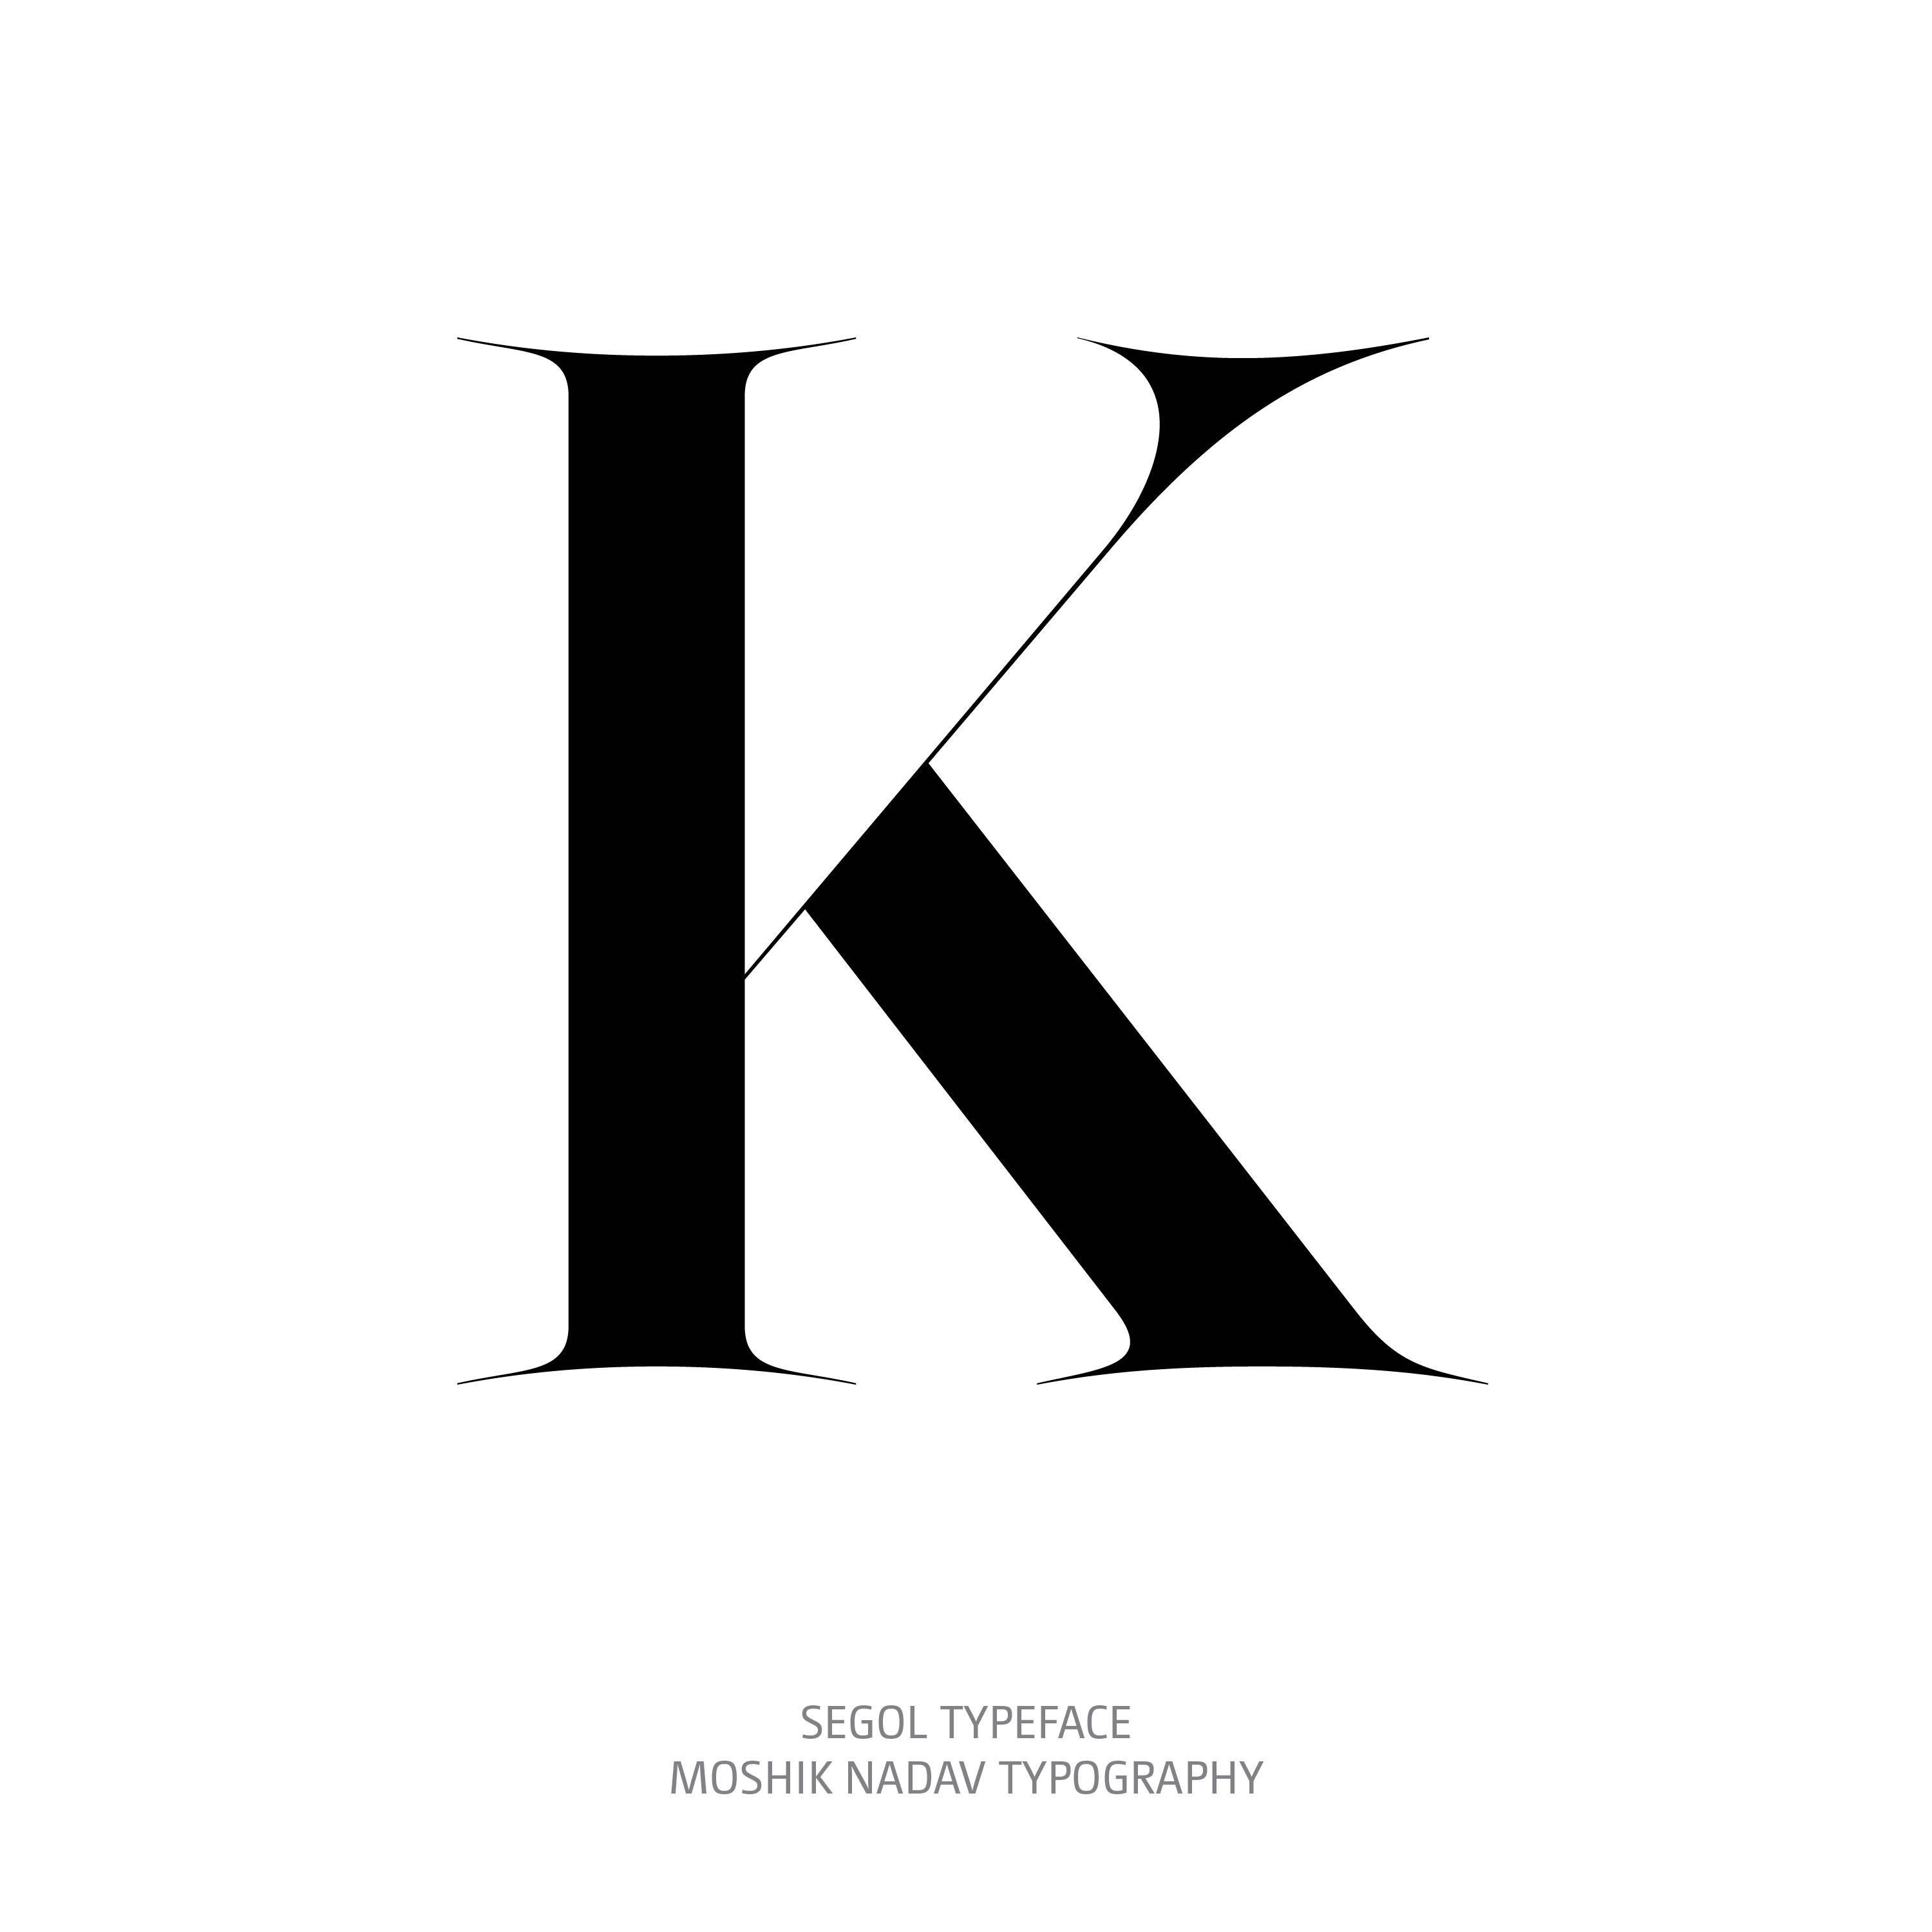 Segol Typeface K The Ultimate Font For Fashion Typography and sexy logos